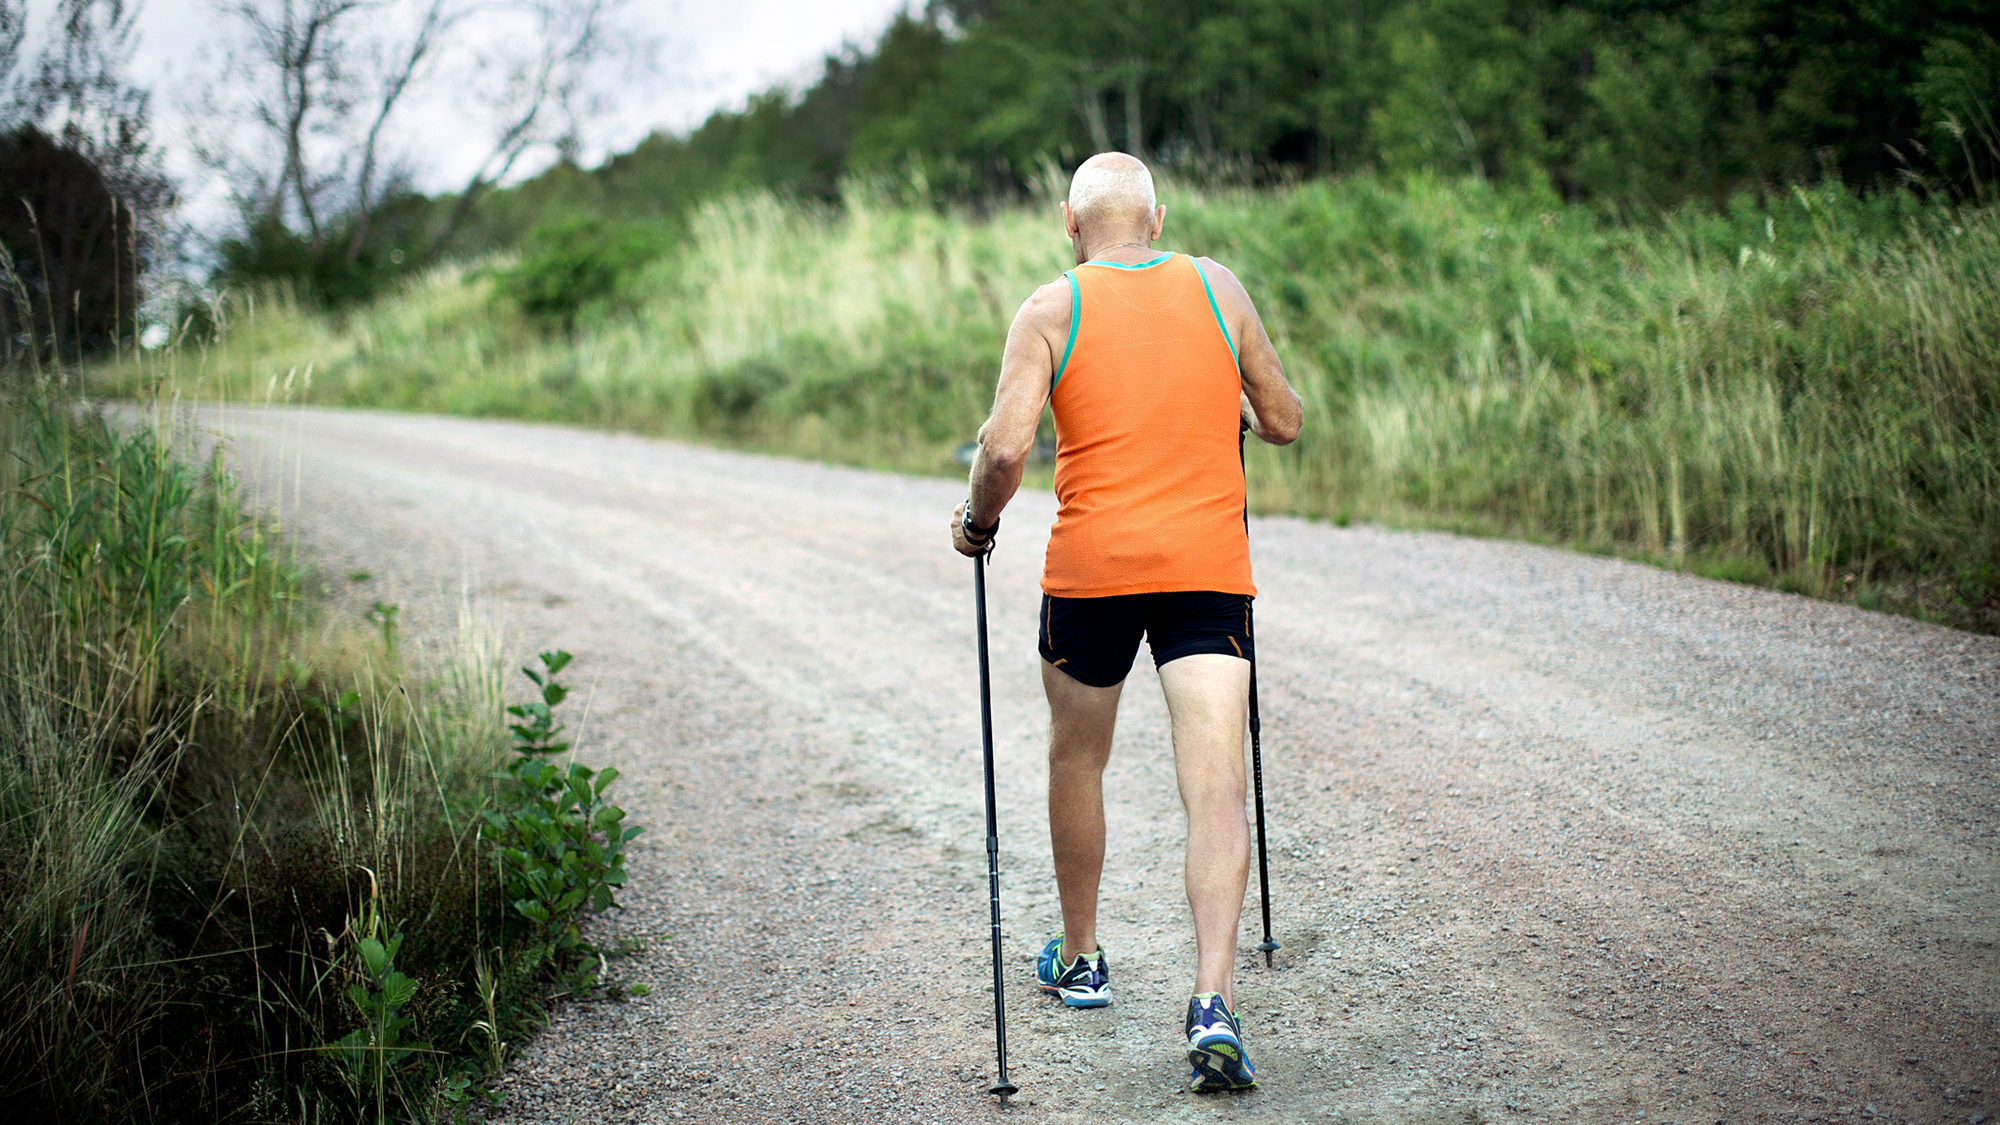 Walking Fends Off Loss Of Mobility